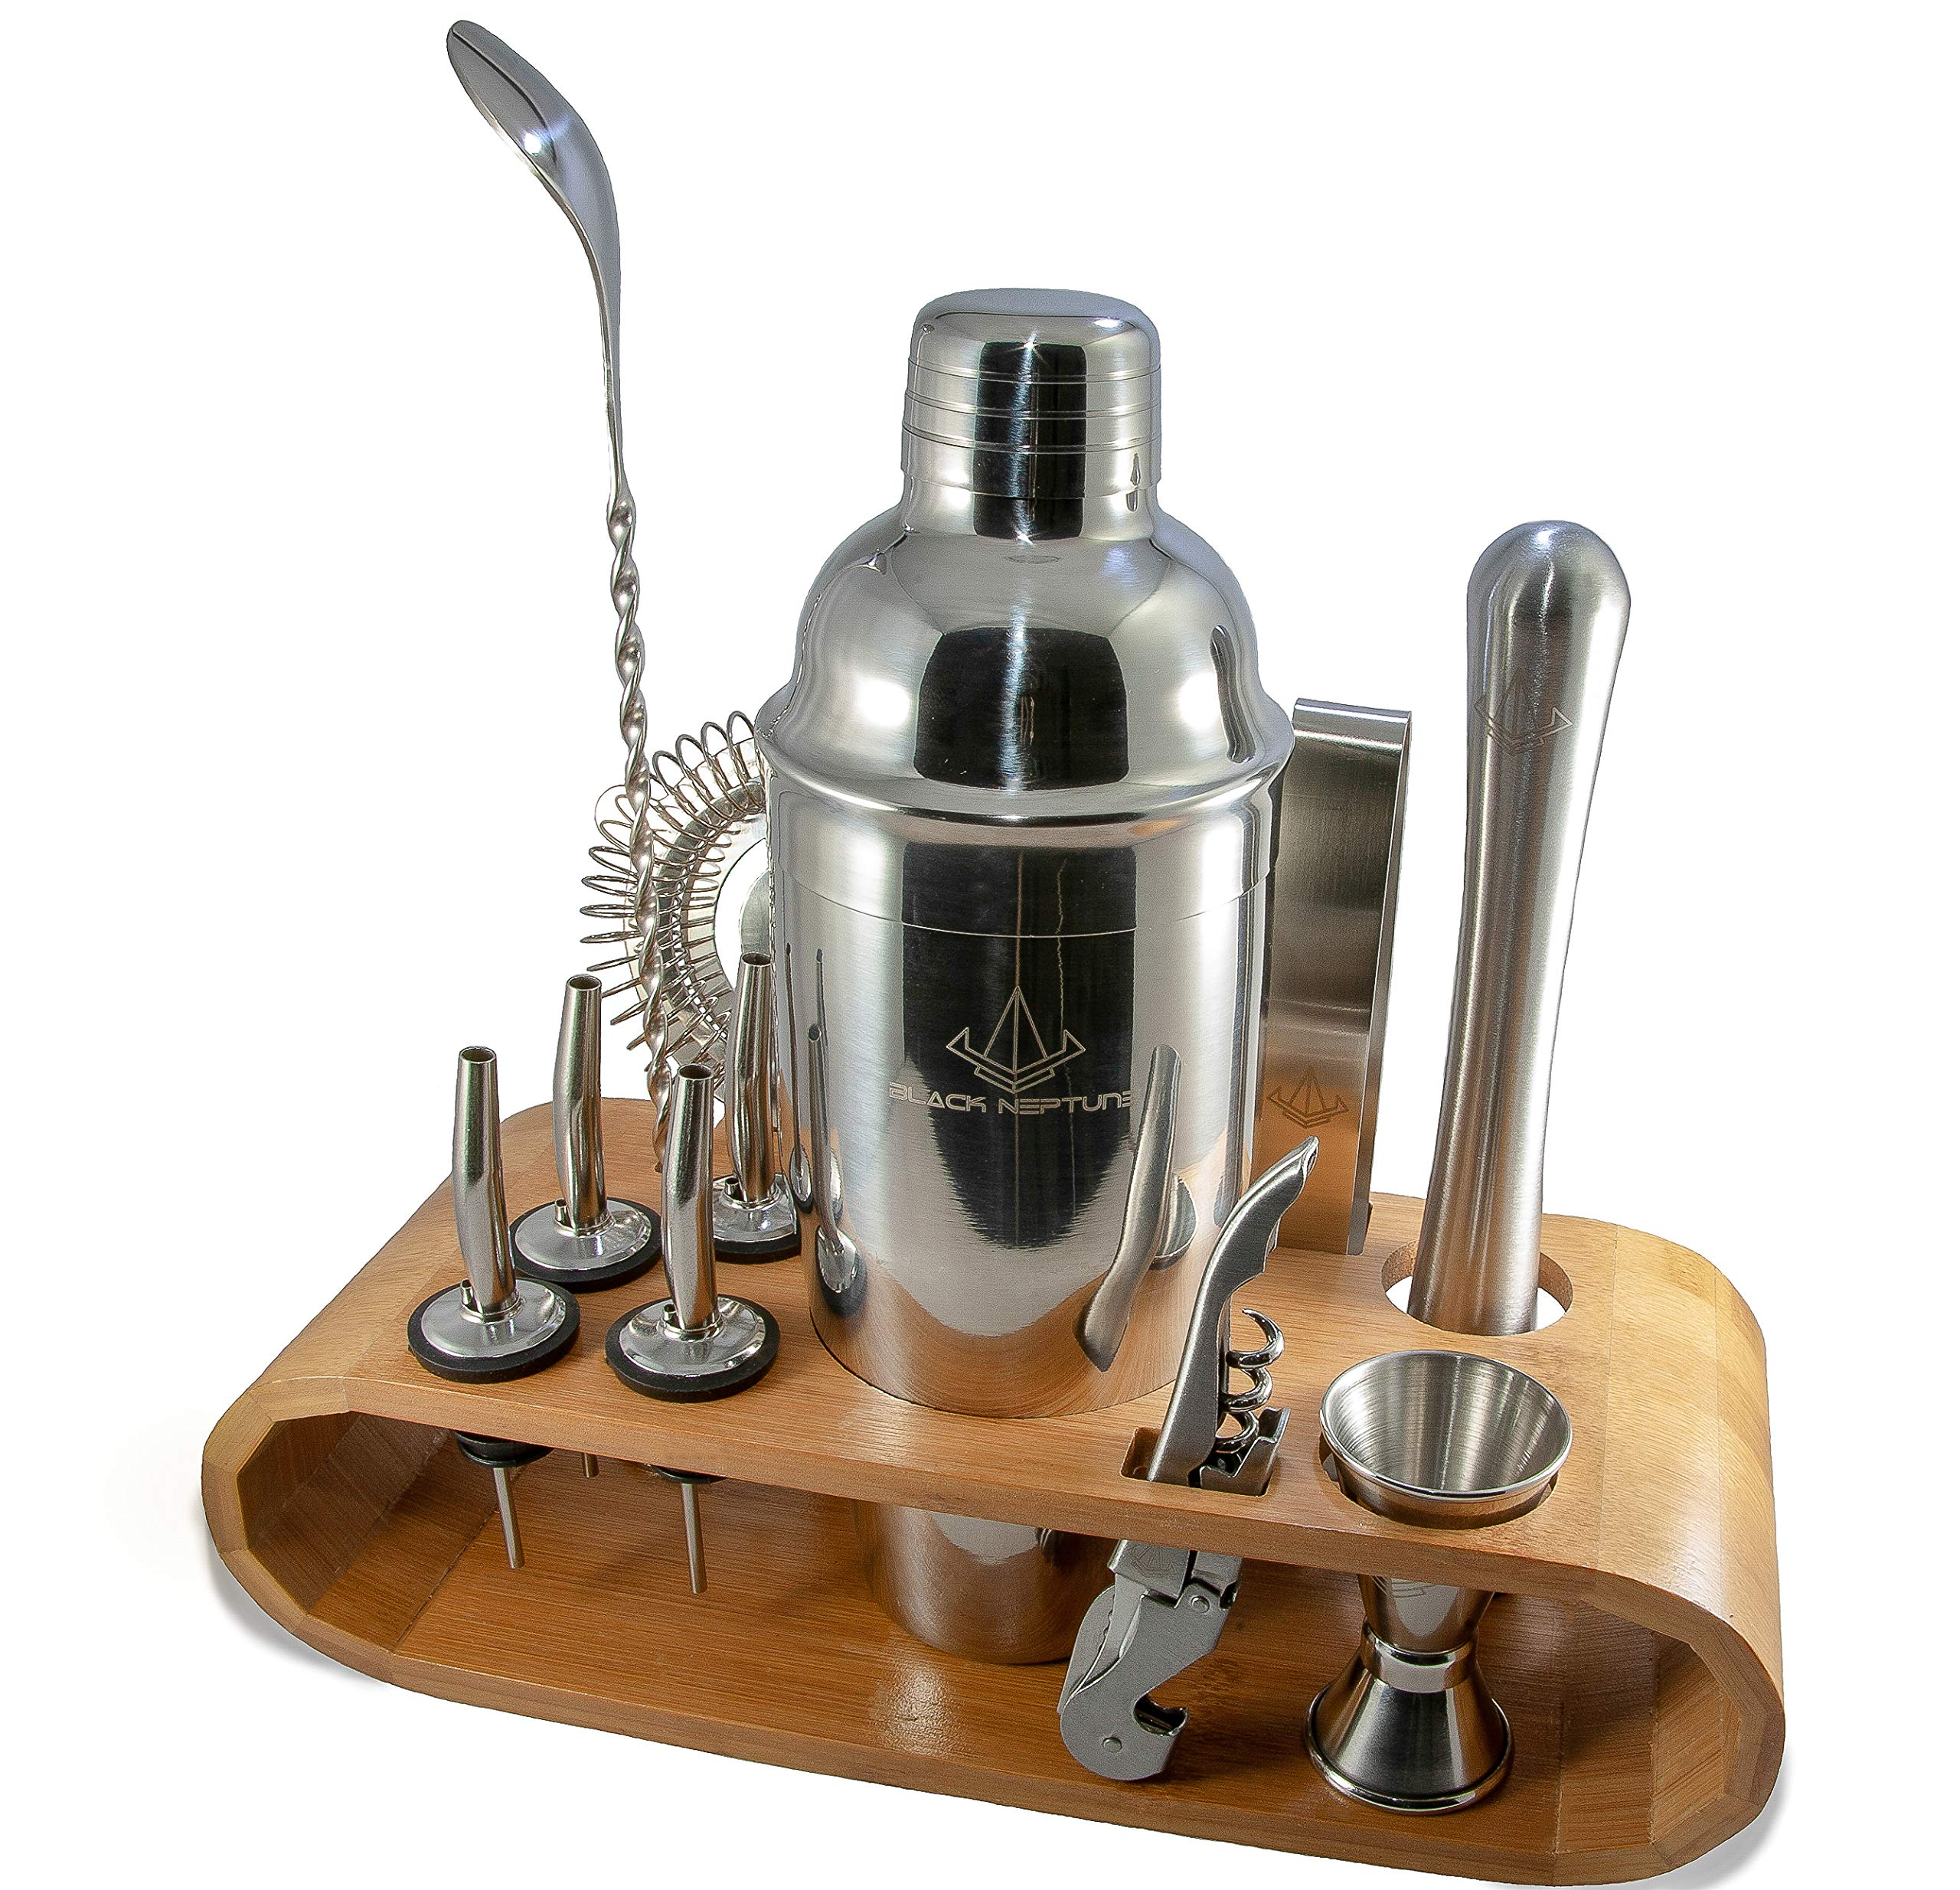 Bar Set -Black Neptune 12-Piece All-In-One Home Kitchen Bar Set, Pro Bartender Cocktail Shaker Tool Kit w/Real Bamboo Stand, Premium-Quality Stainless Steel Accessories, Perfect Gift, Dishwasher Safe